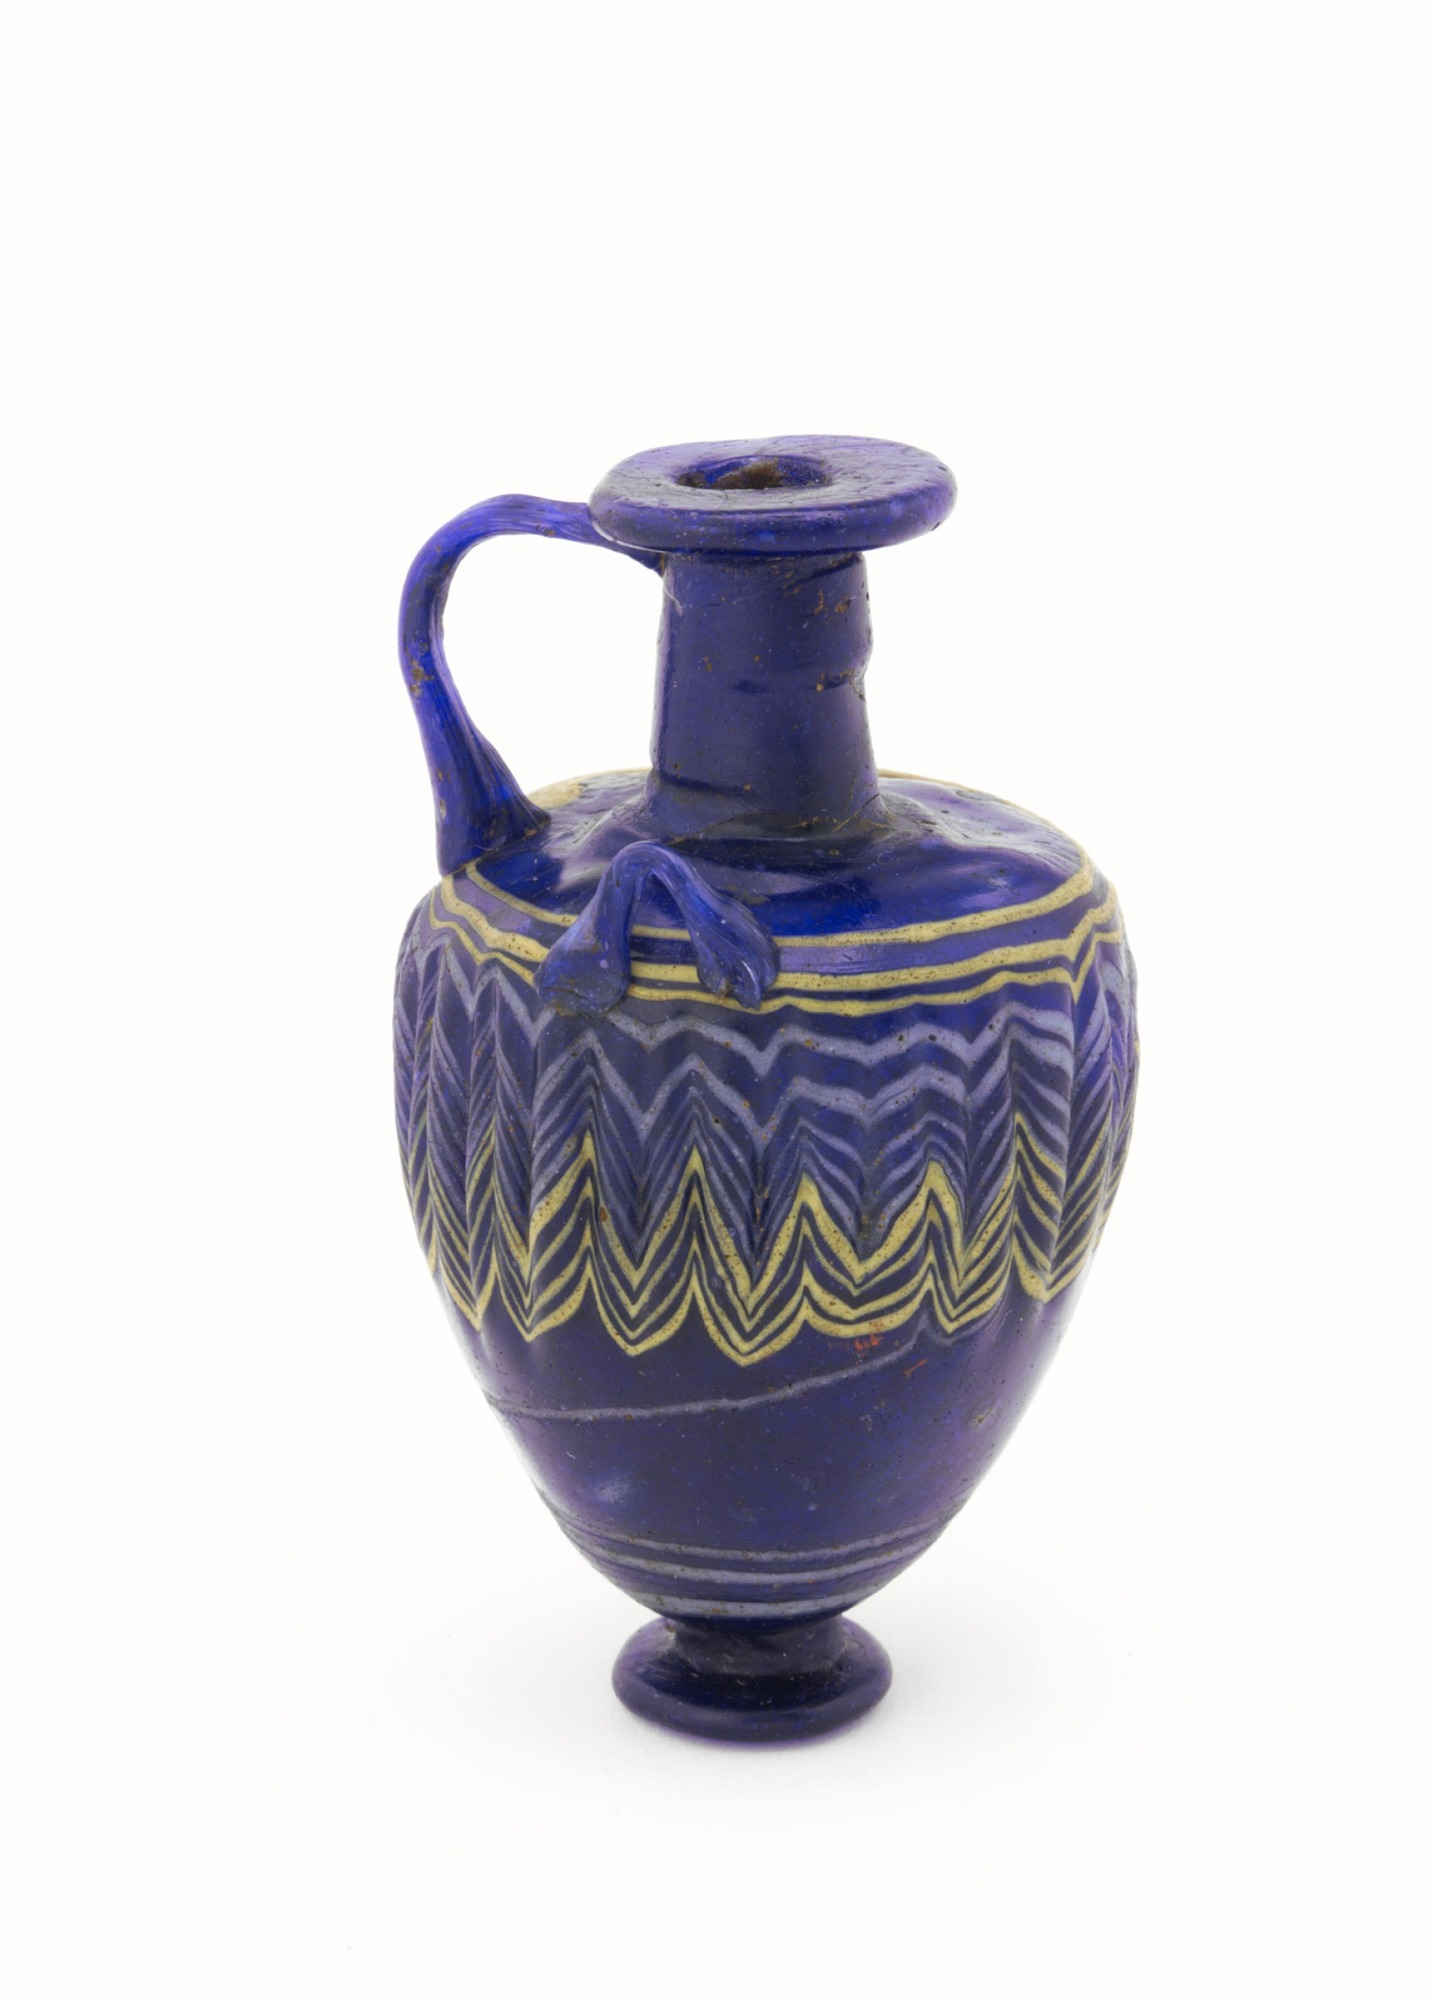 profile: Dark blue, three-handled jug with yellow and white dragged designs